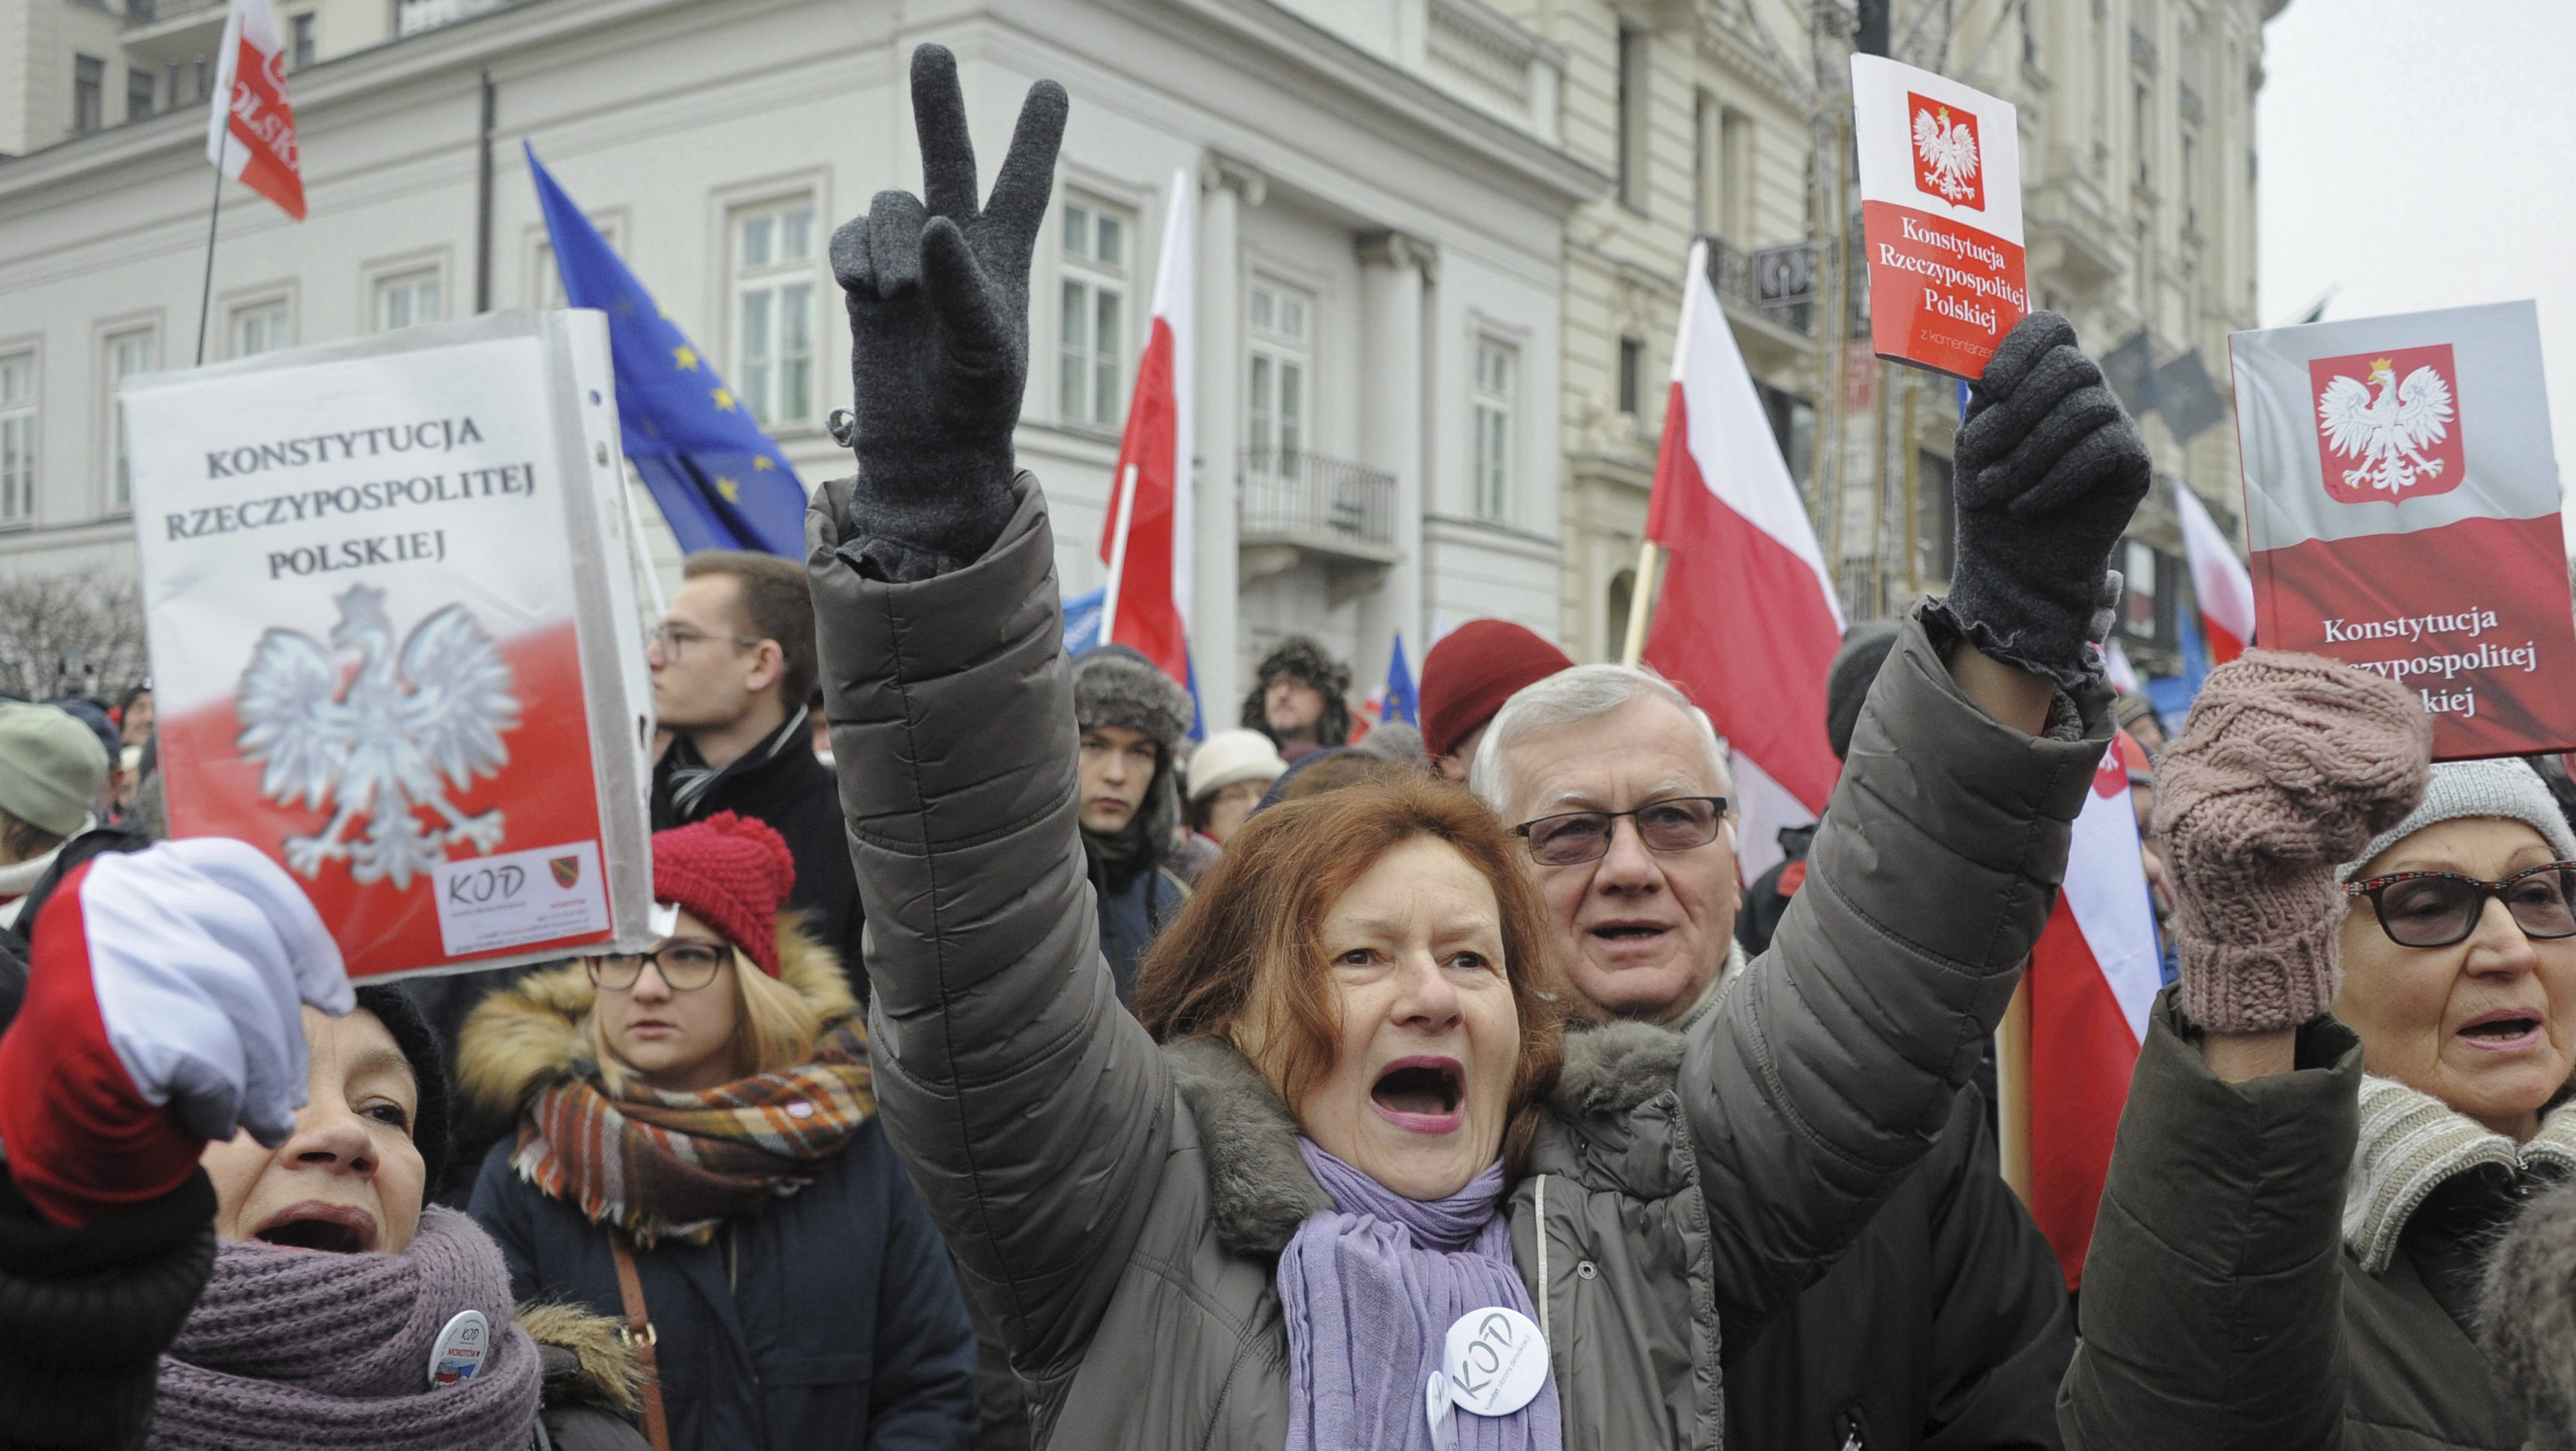 Protesters holding copies of Poland's constitution shout slogans during an anti-government demonstration, in Warsaw, Poland, Saturday, Dec. 17, 2016. Opponents of the country's populist government are staging a new protest outside the presidential palace in an appeal to the head of state to protect the young democracy's constitutional order from a series of government steps they deem anti-democratic. (AP Photo/Alik Keplicz)